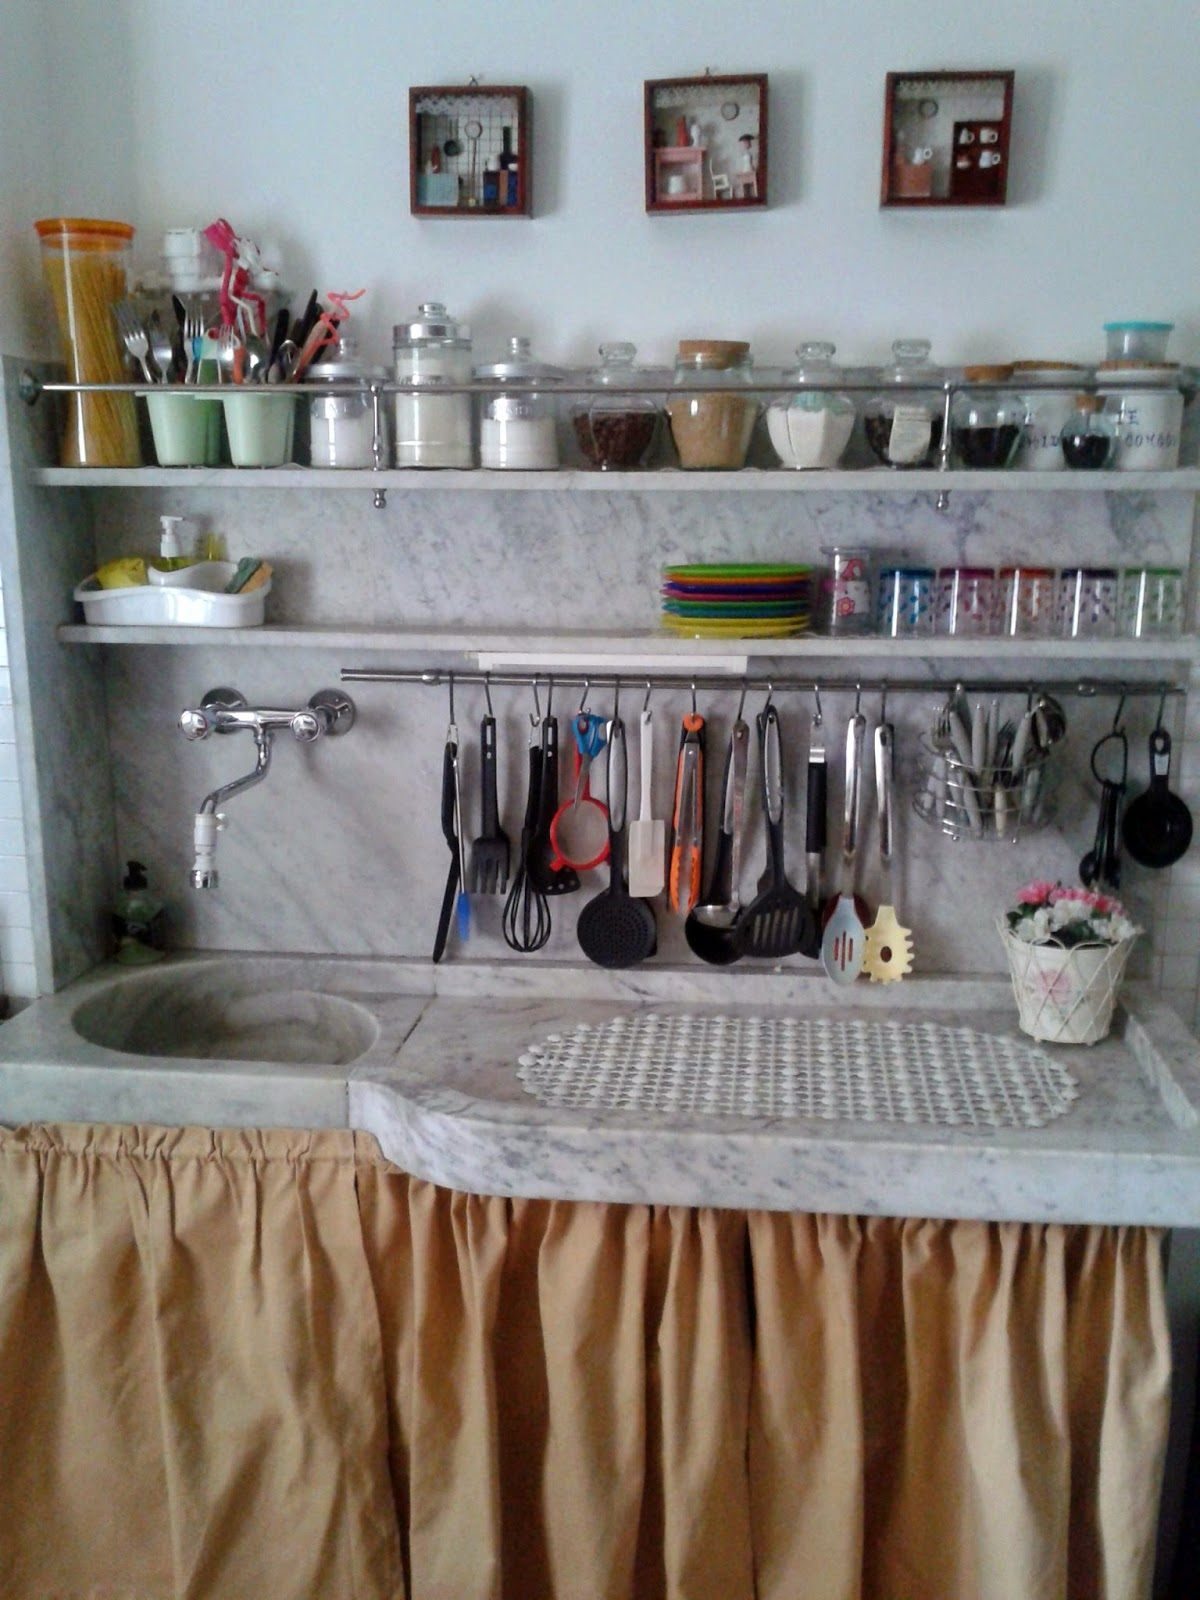 my kitchen - contest la food-blogger cucina qui!